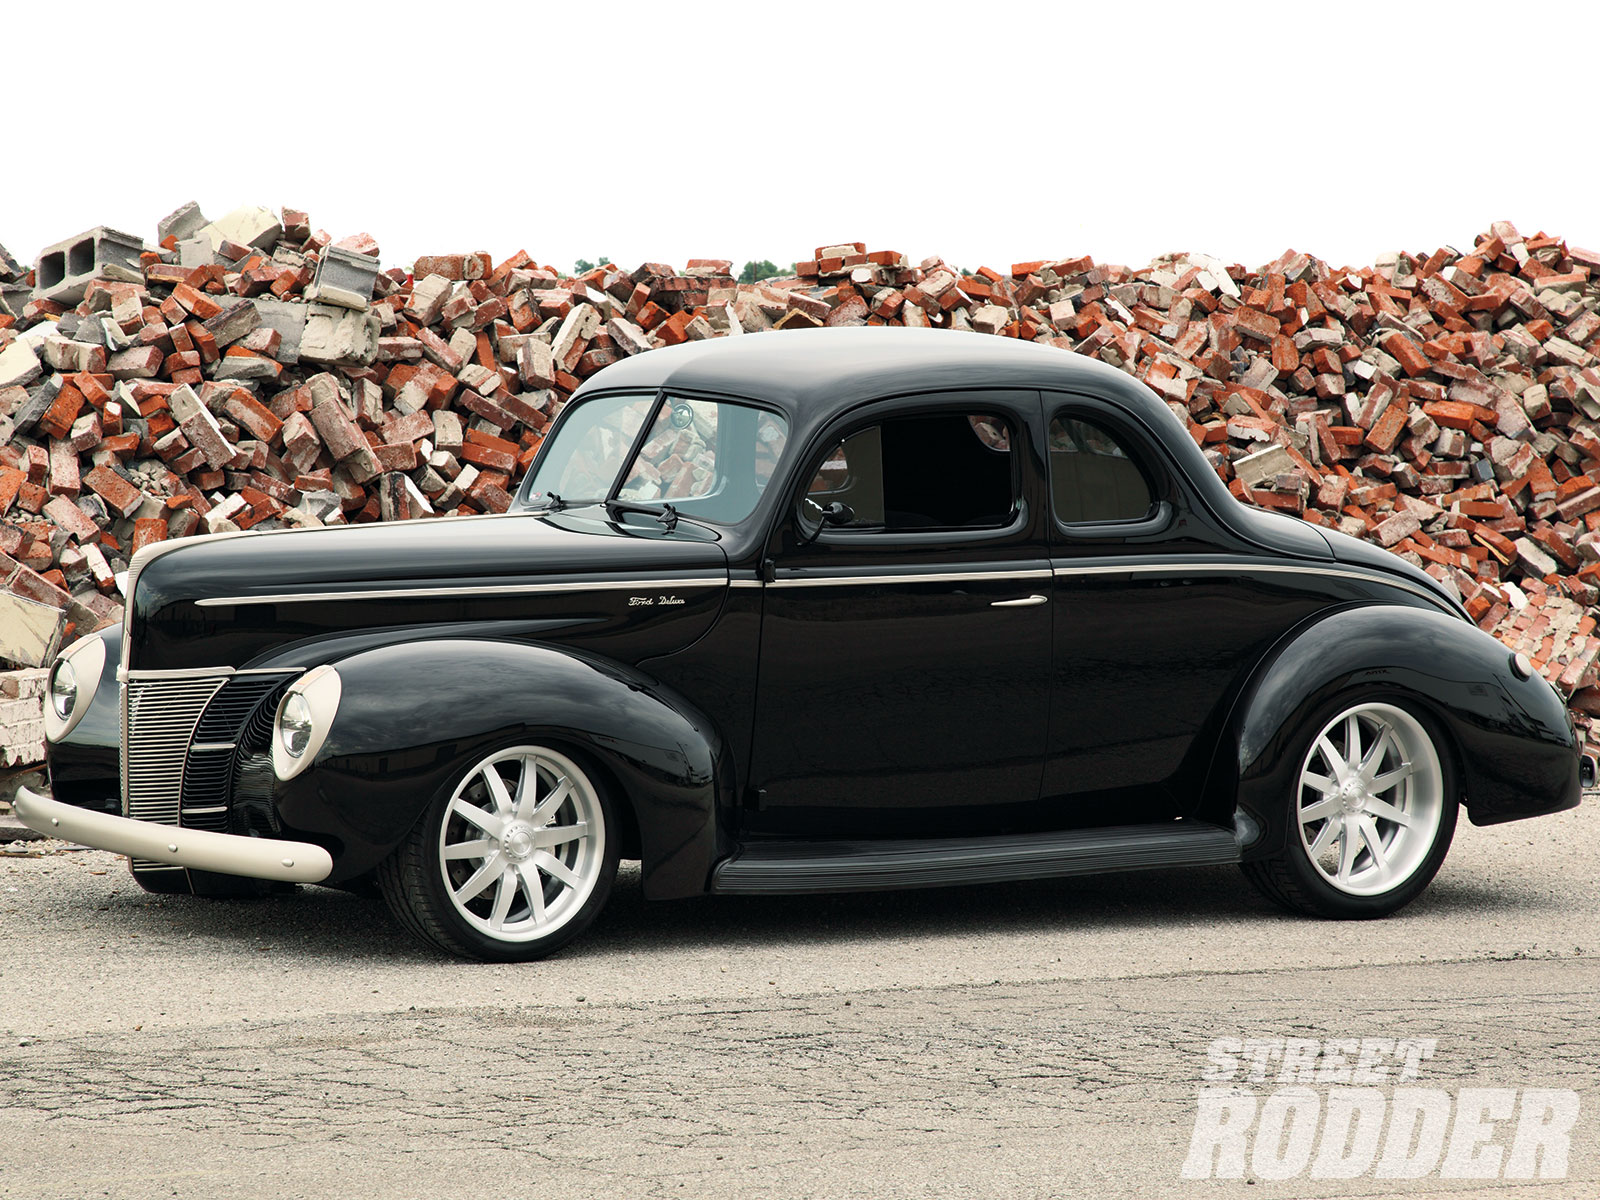 1940 Ford coupe.